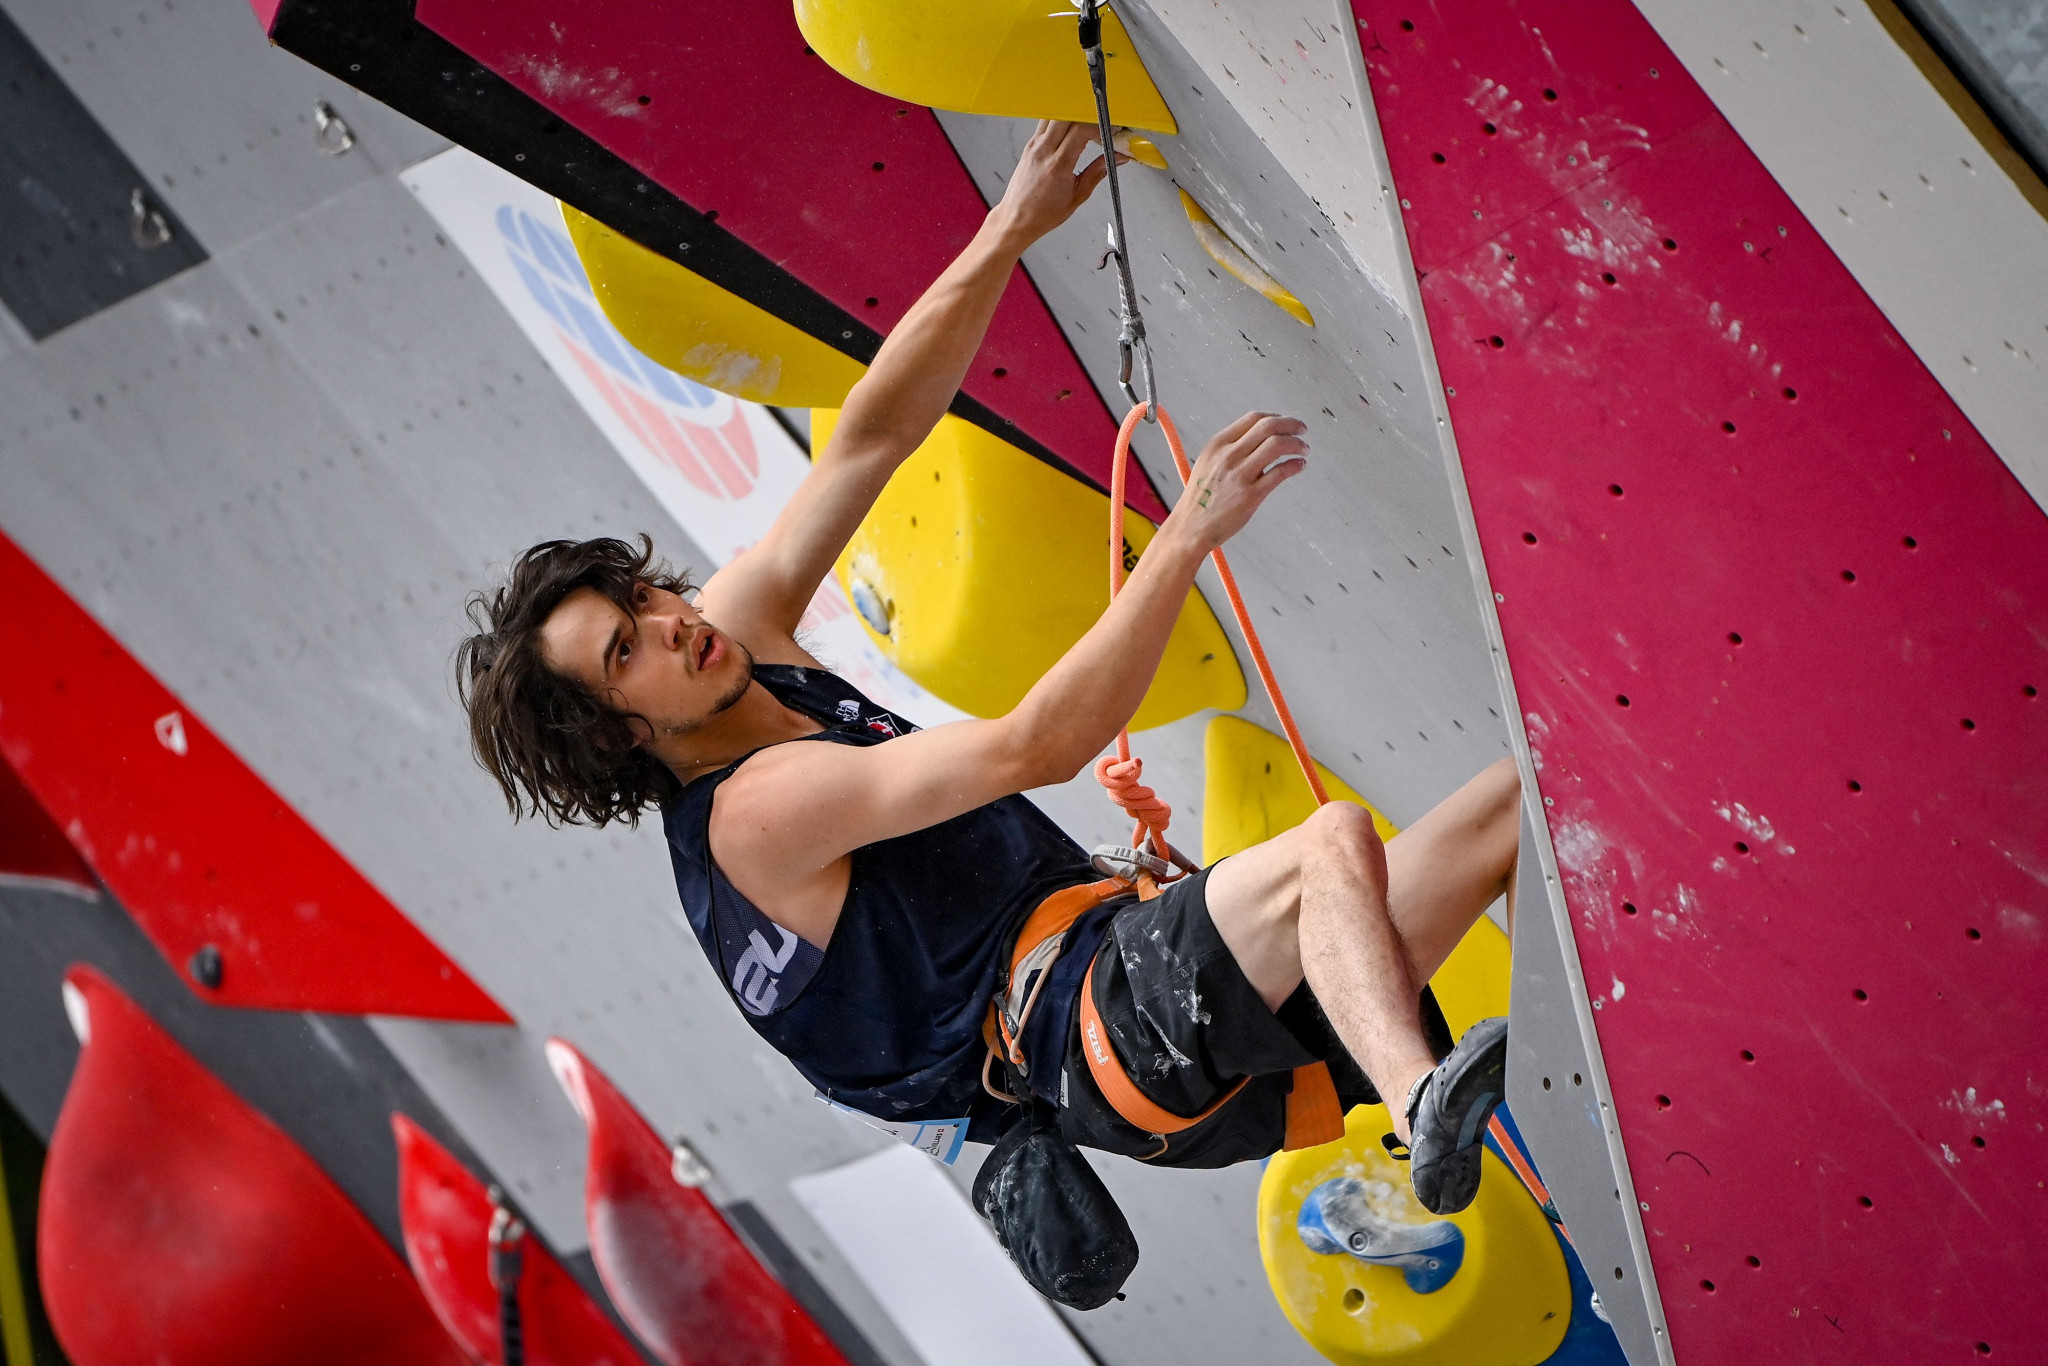 Bailey aims for IFSC World Cup hat-trick in Briançon